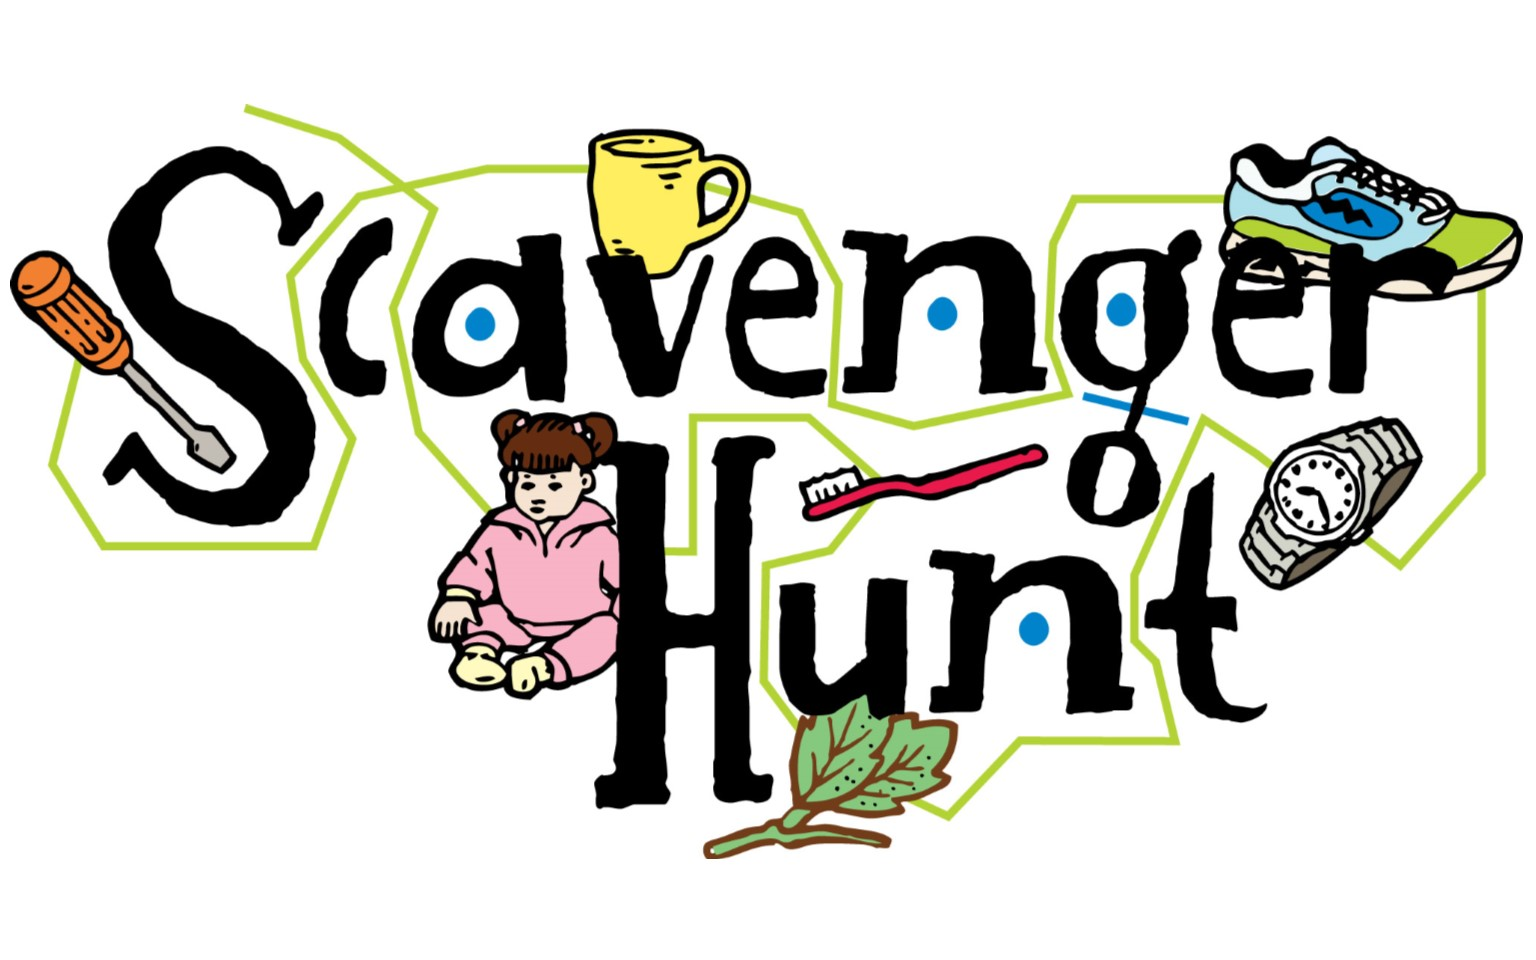 hs youth scavenger hunt oct 29 7pm tlcms org rh tlcms org scavenger hunt map clipart scavenger hunt clipart png